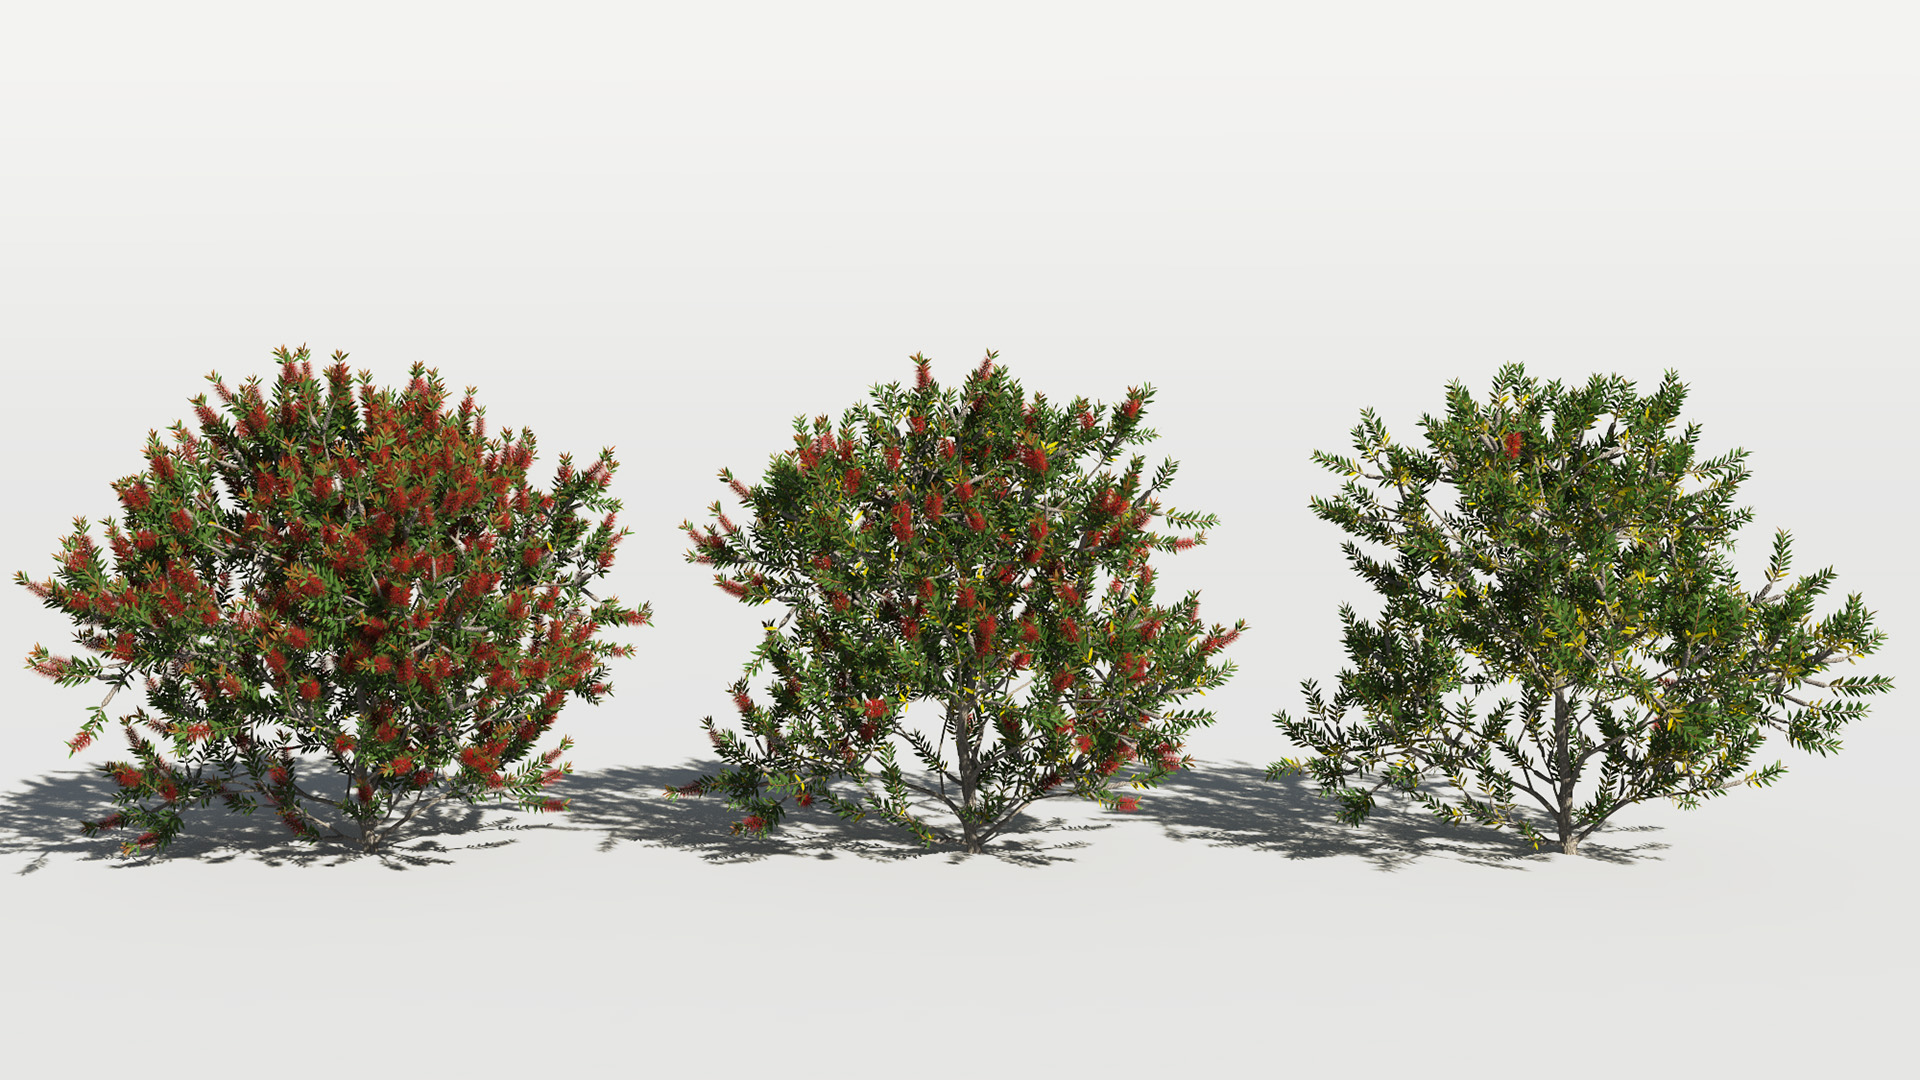 3D model of the Bottlebrush laevis Callistemon laevis health variations